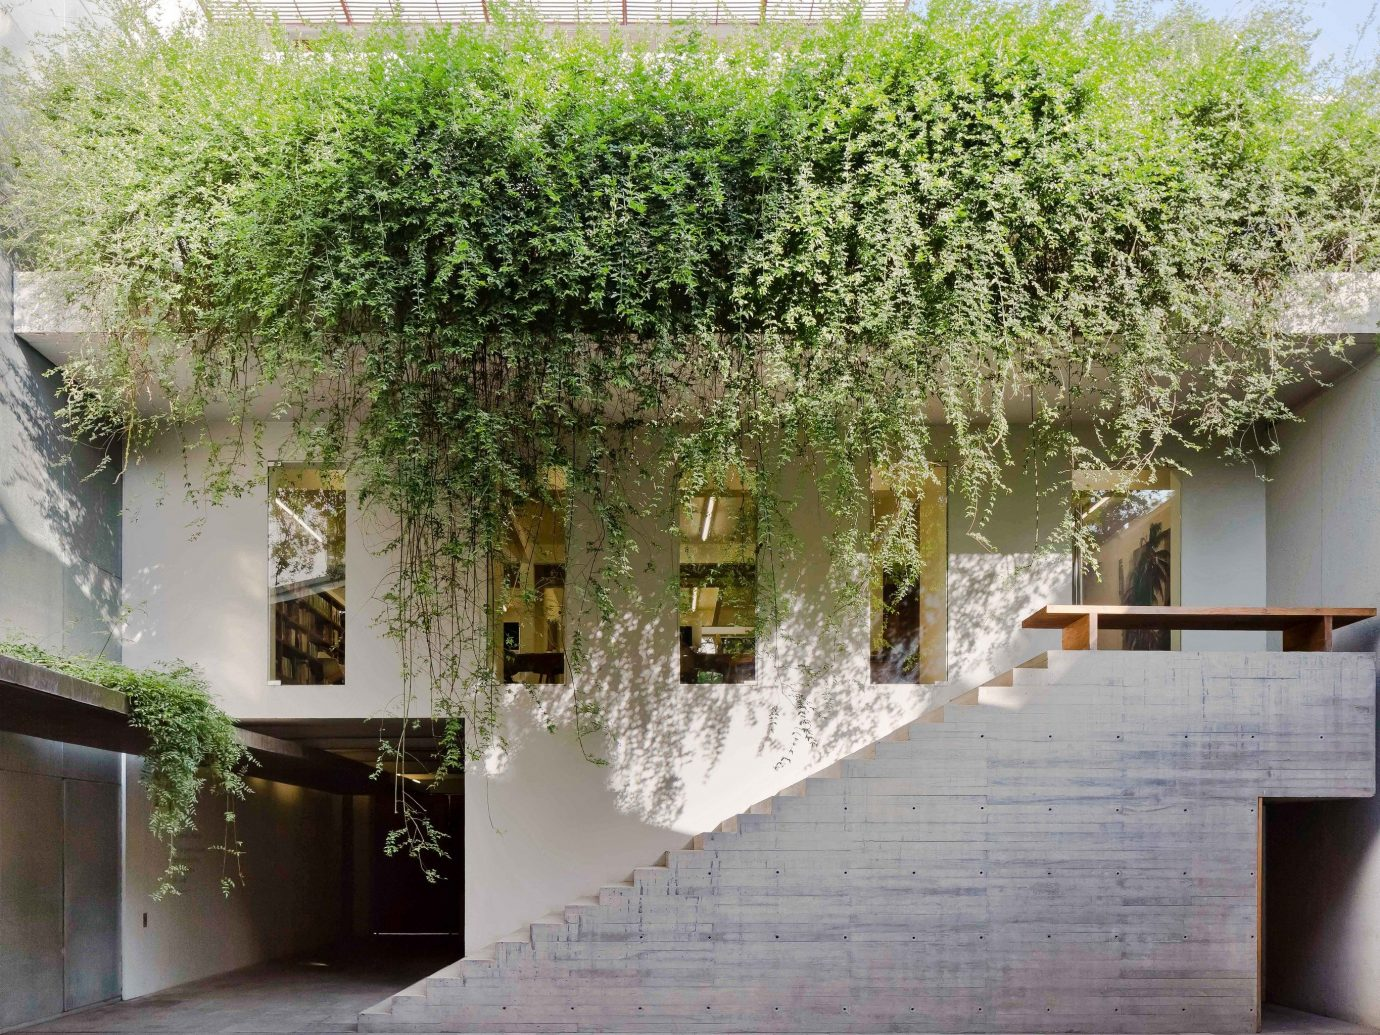 City Mexico City Trip Ideas Architecture plant house flower Courtyard facade tree building